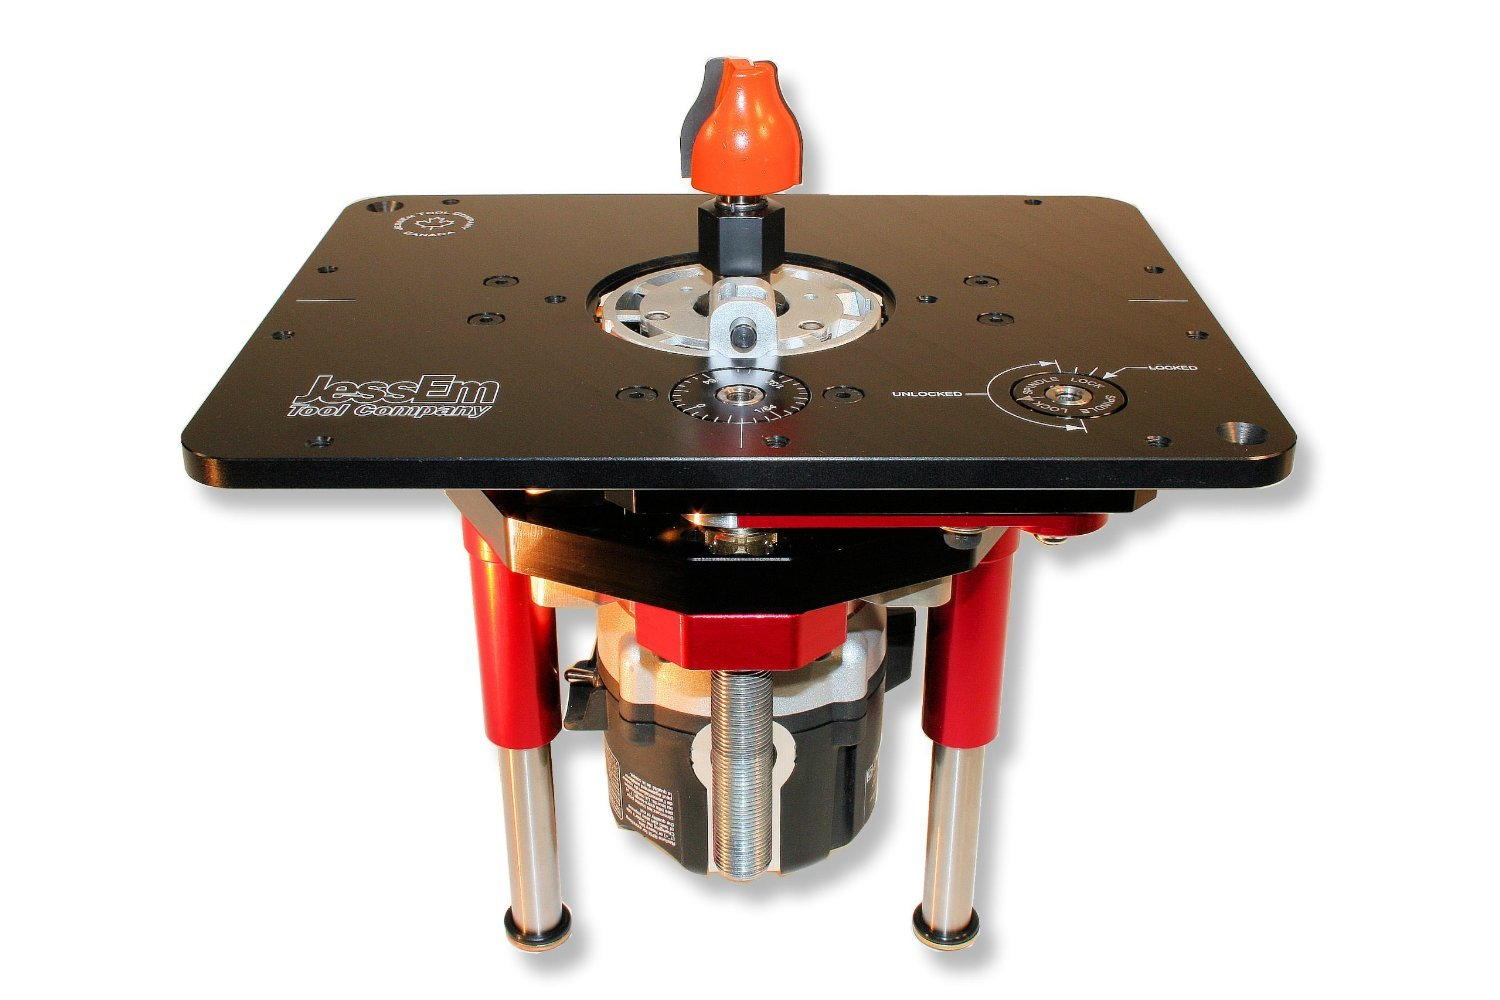 JessEm Mast-R-Lift II 02120 Router Lift, 9-1/4-Inch by 11-3/4-Inch by JessEm Tool Company (Image #4)